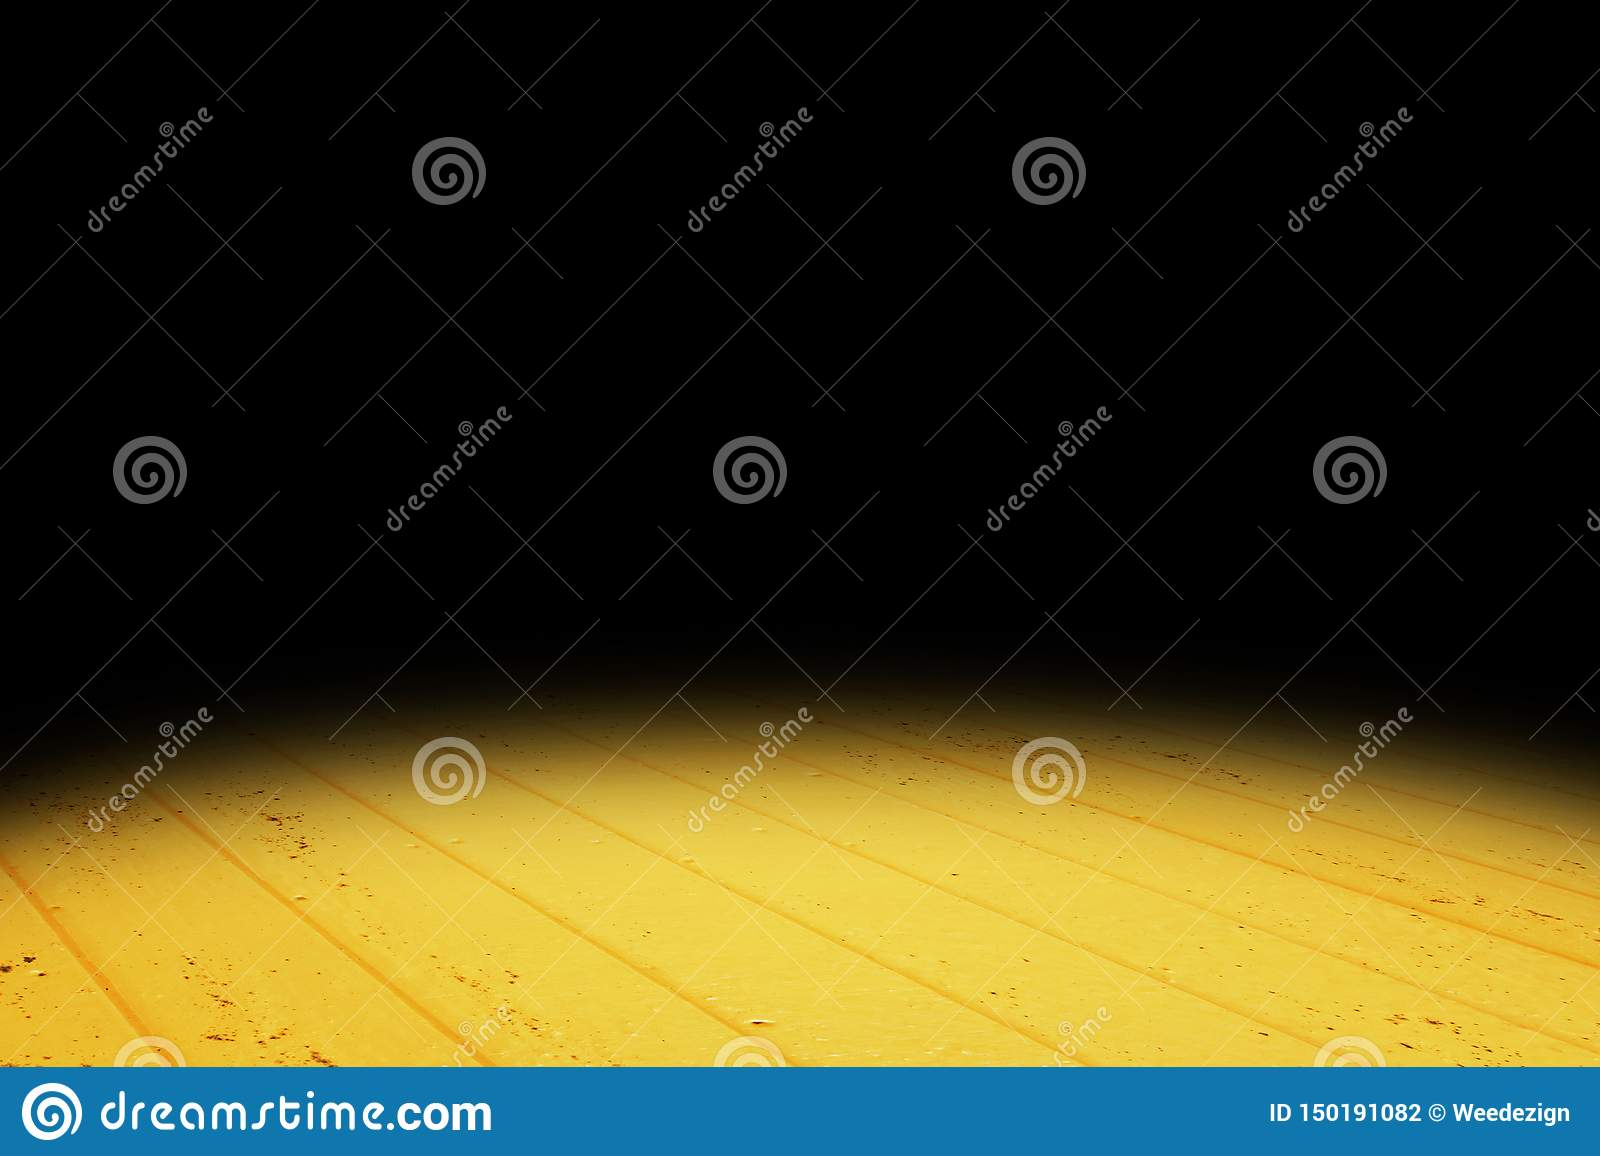 Dark vivid yellow Plank wood floor texture perspective background for display or montage of product,Mock up template for your